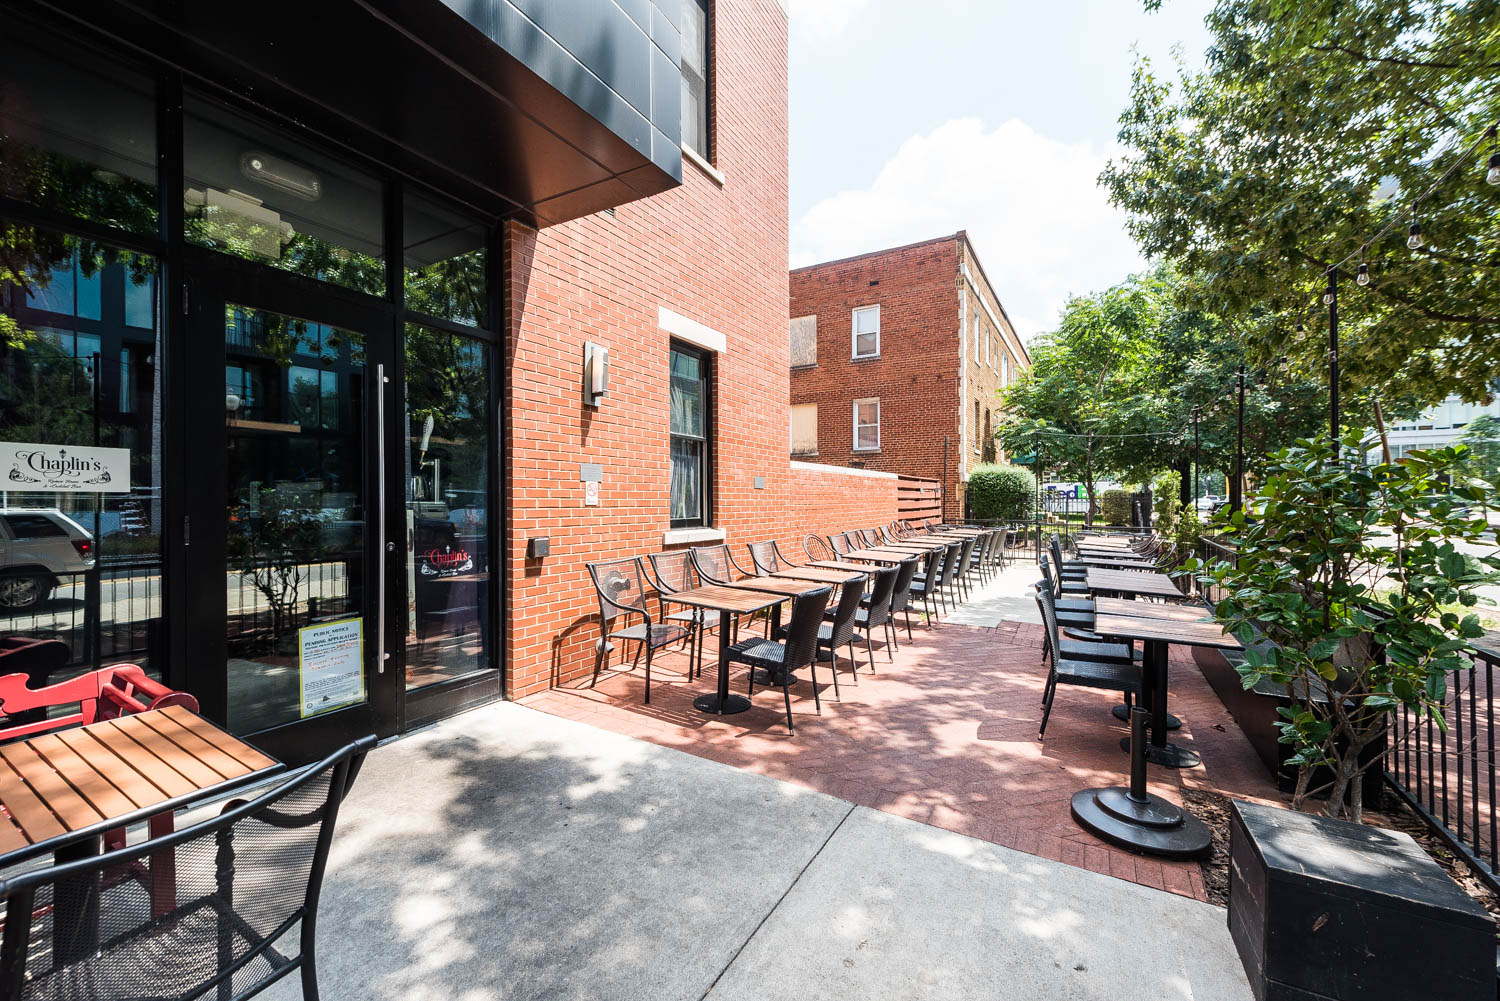 The Outdoor Patio At Chaplinu0027s That Co Founders Ari And Micah Wilder Are  Working On Covering Up For Year Round Use.